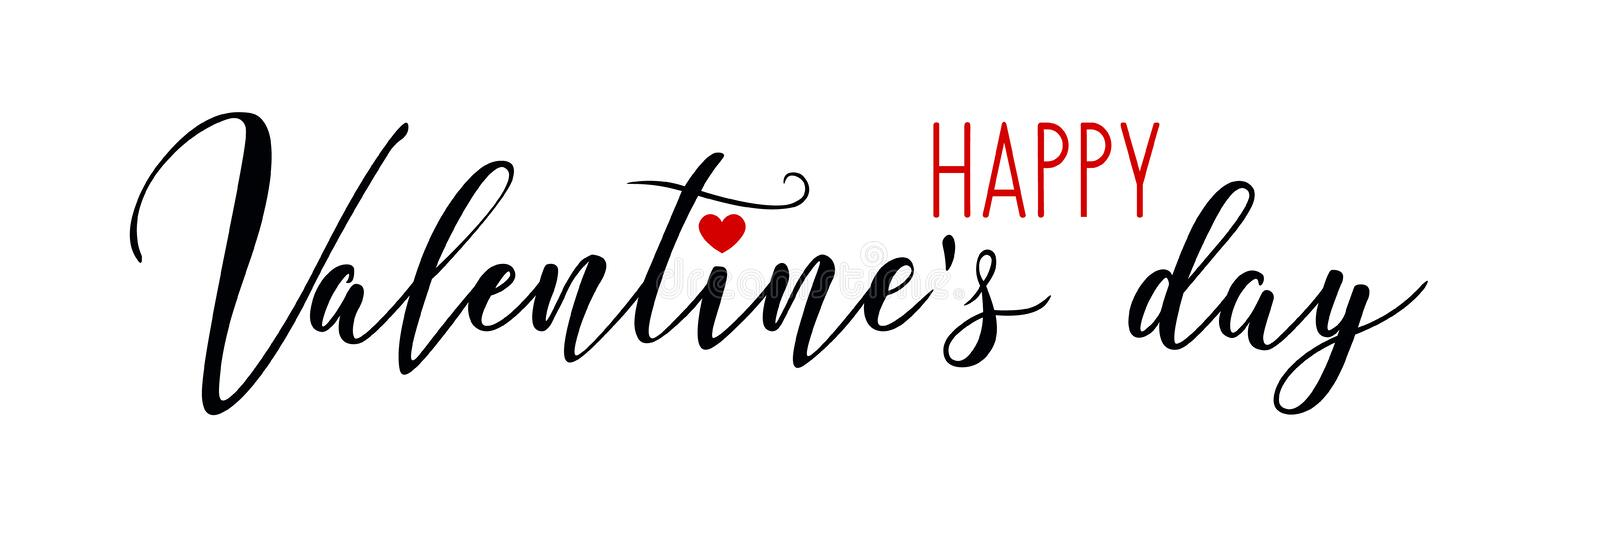 Happy Valentine`s day. Hand drawn creative calligraphy and brush pen lettering isolated on white background. design for holiday gr royalty free illustration